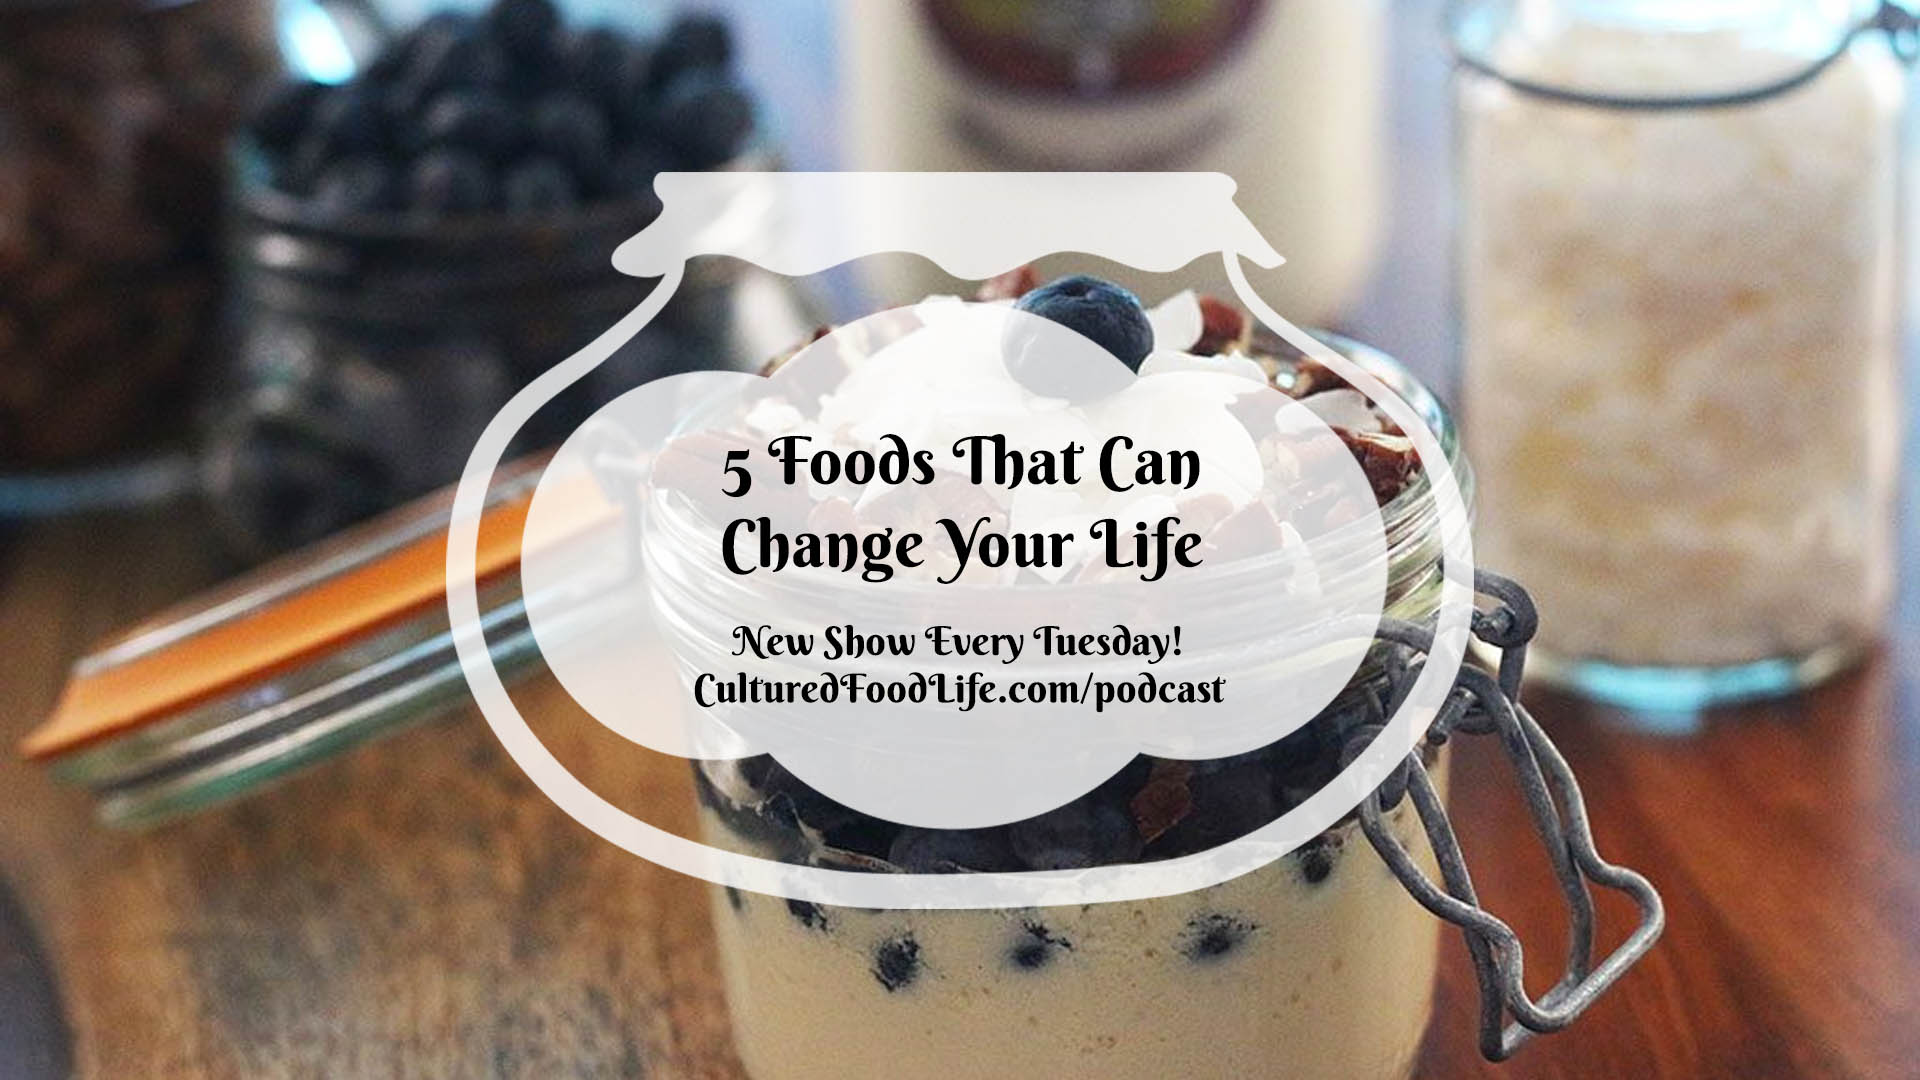 5 Foods That Can Change Your Life